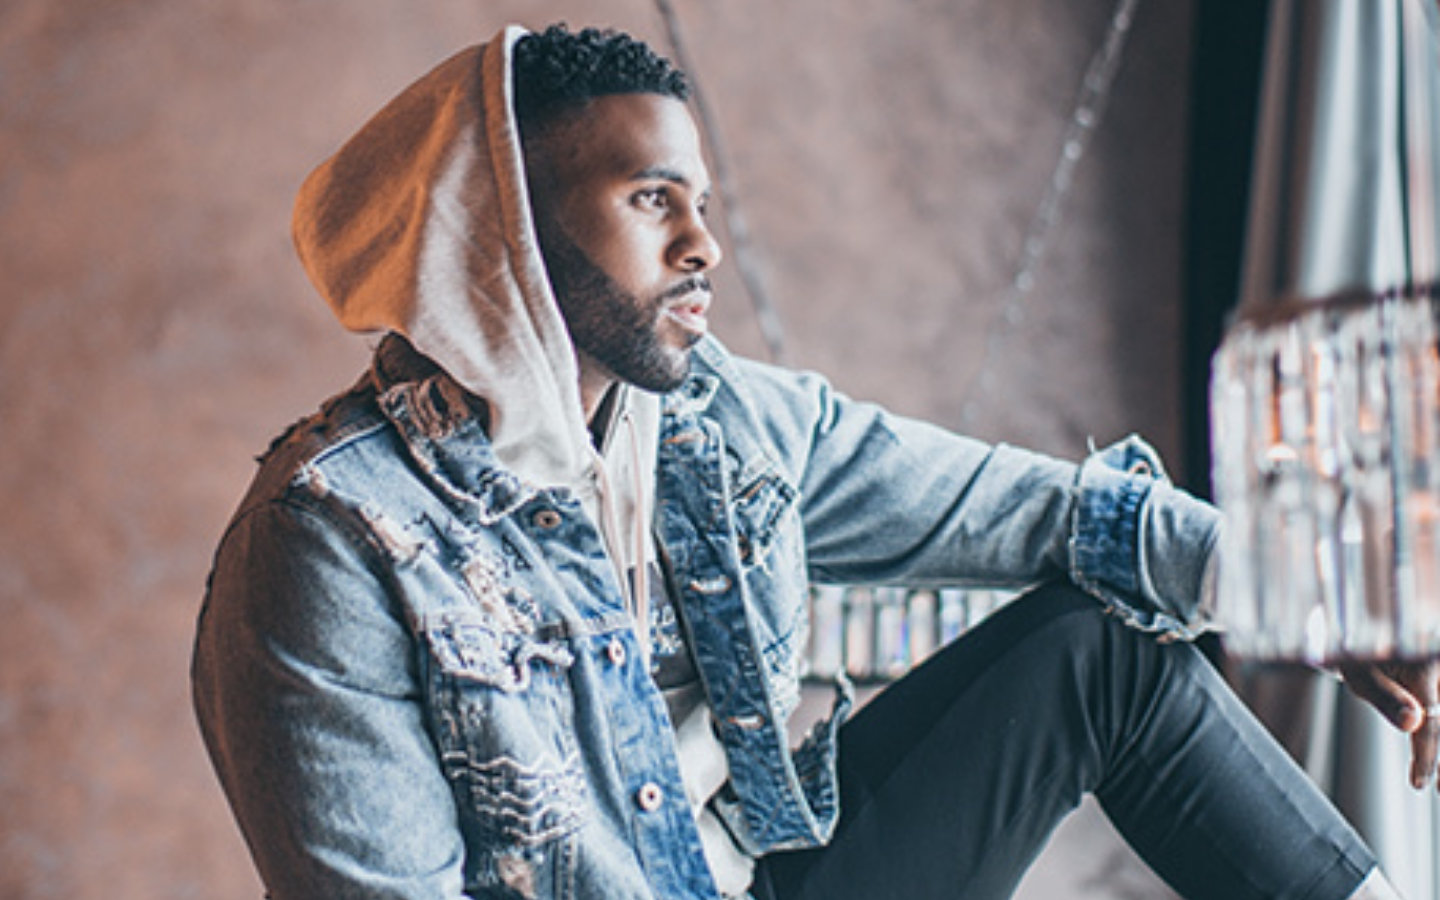 Jason Derulo performing at Global Village for events in Dubai in December